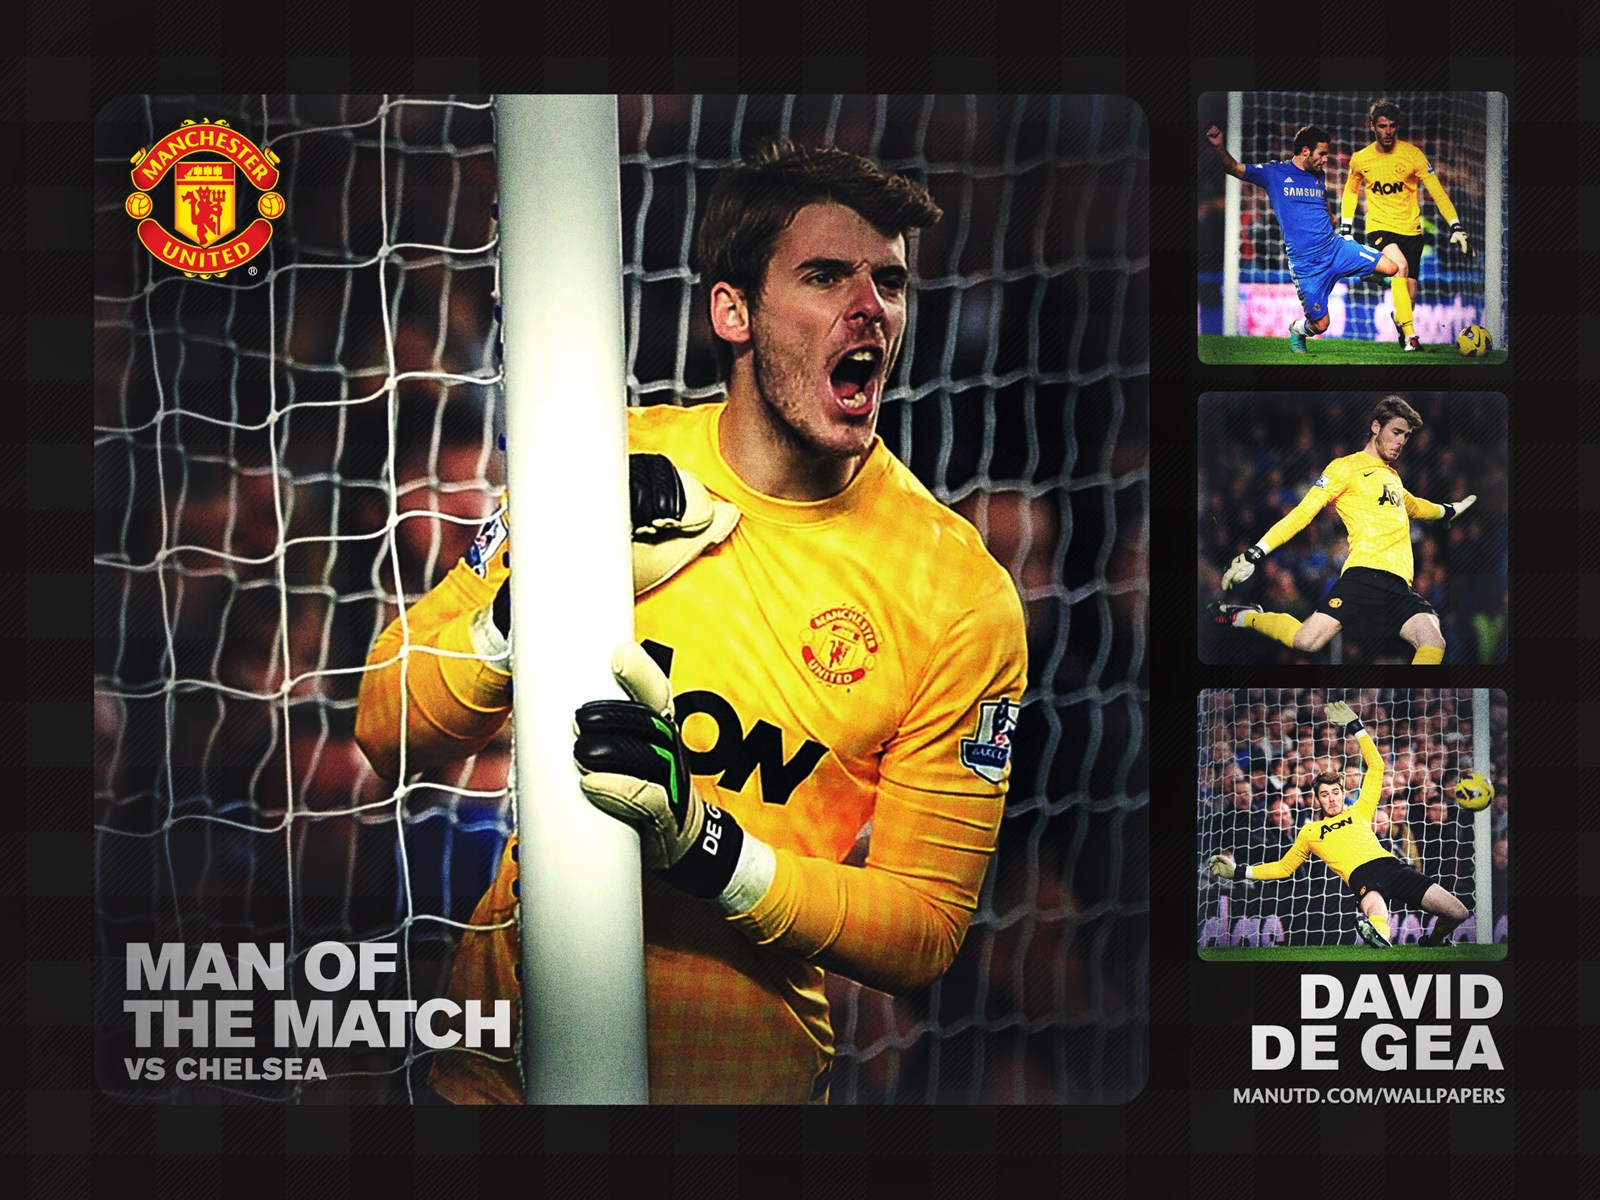 Manchester United David De Gea Is The Man The Match